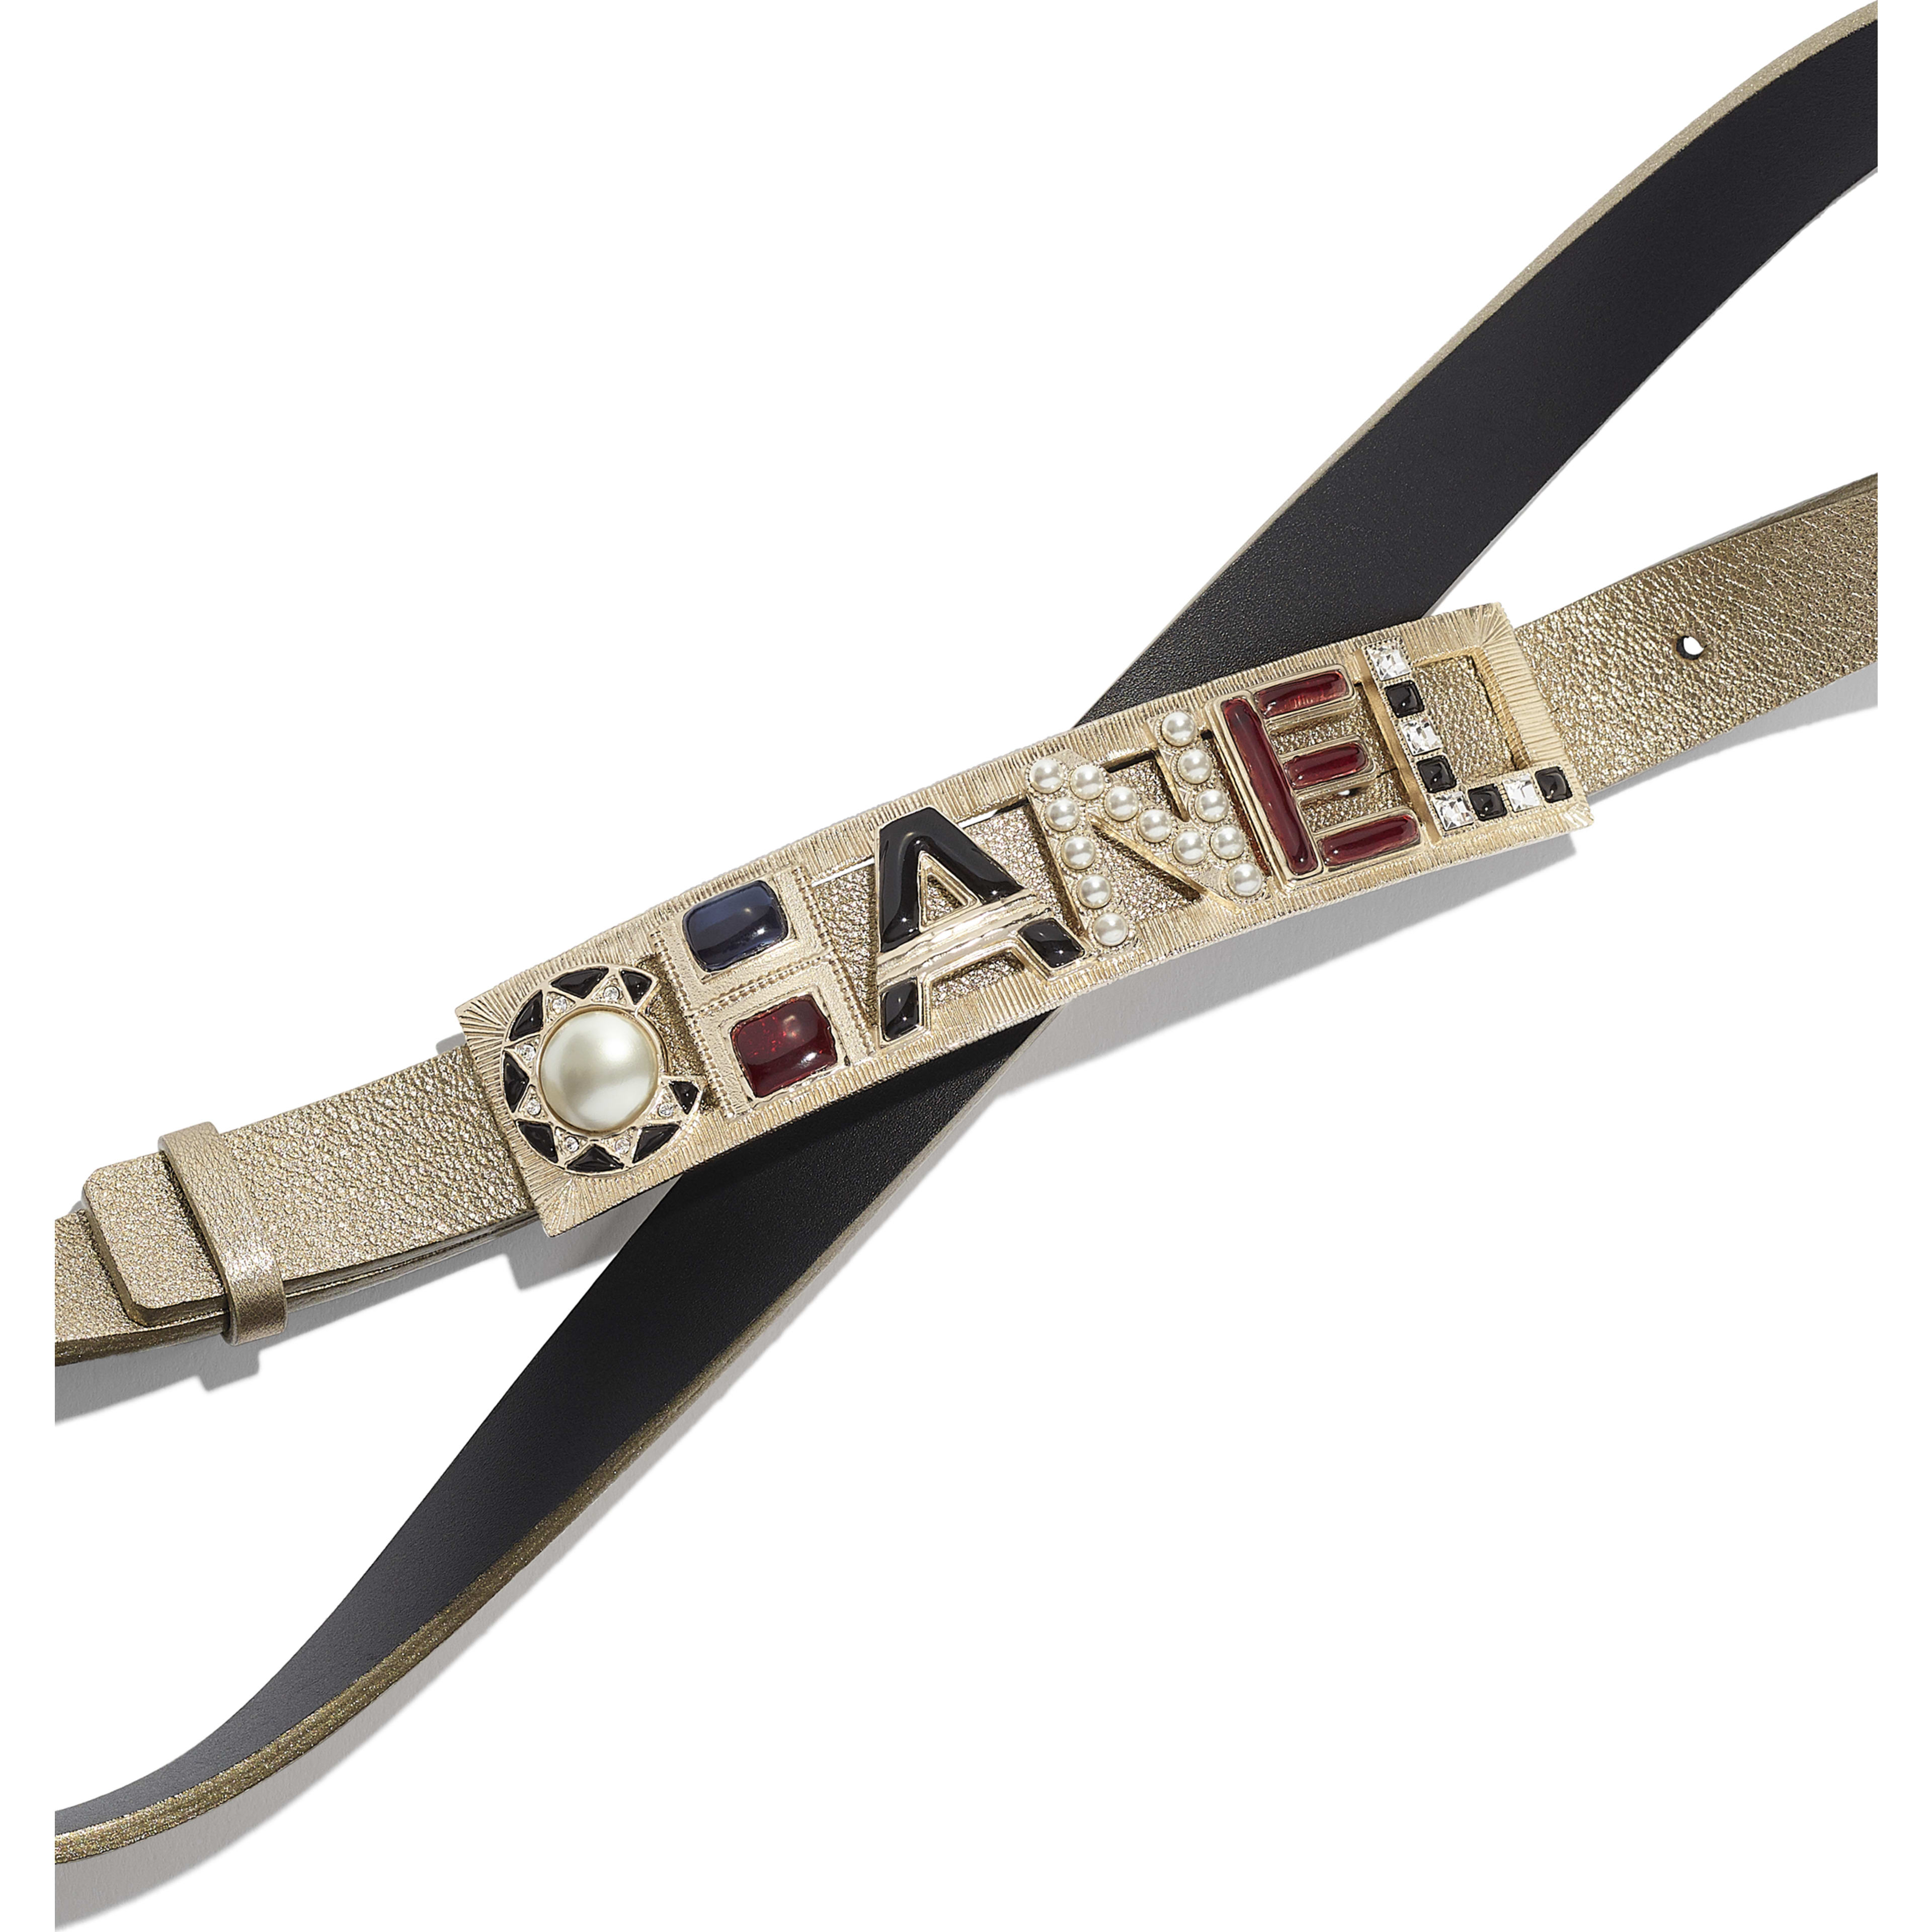 Belt - Gold & Red - Lambskin, Gold-Tone Metal, Glass, Strass & Resin - Alternative view - see full sized version